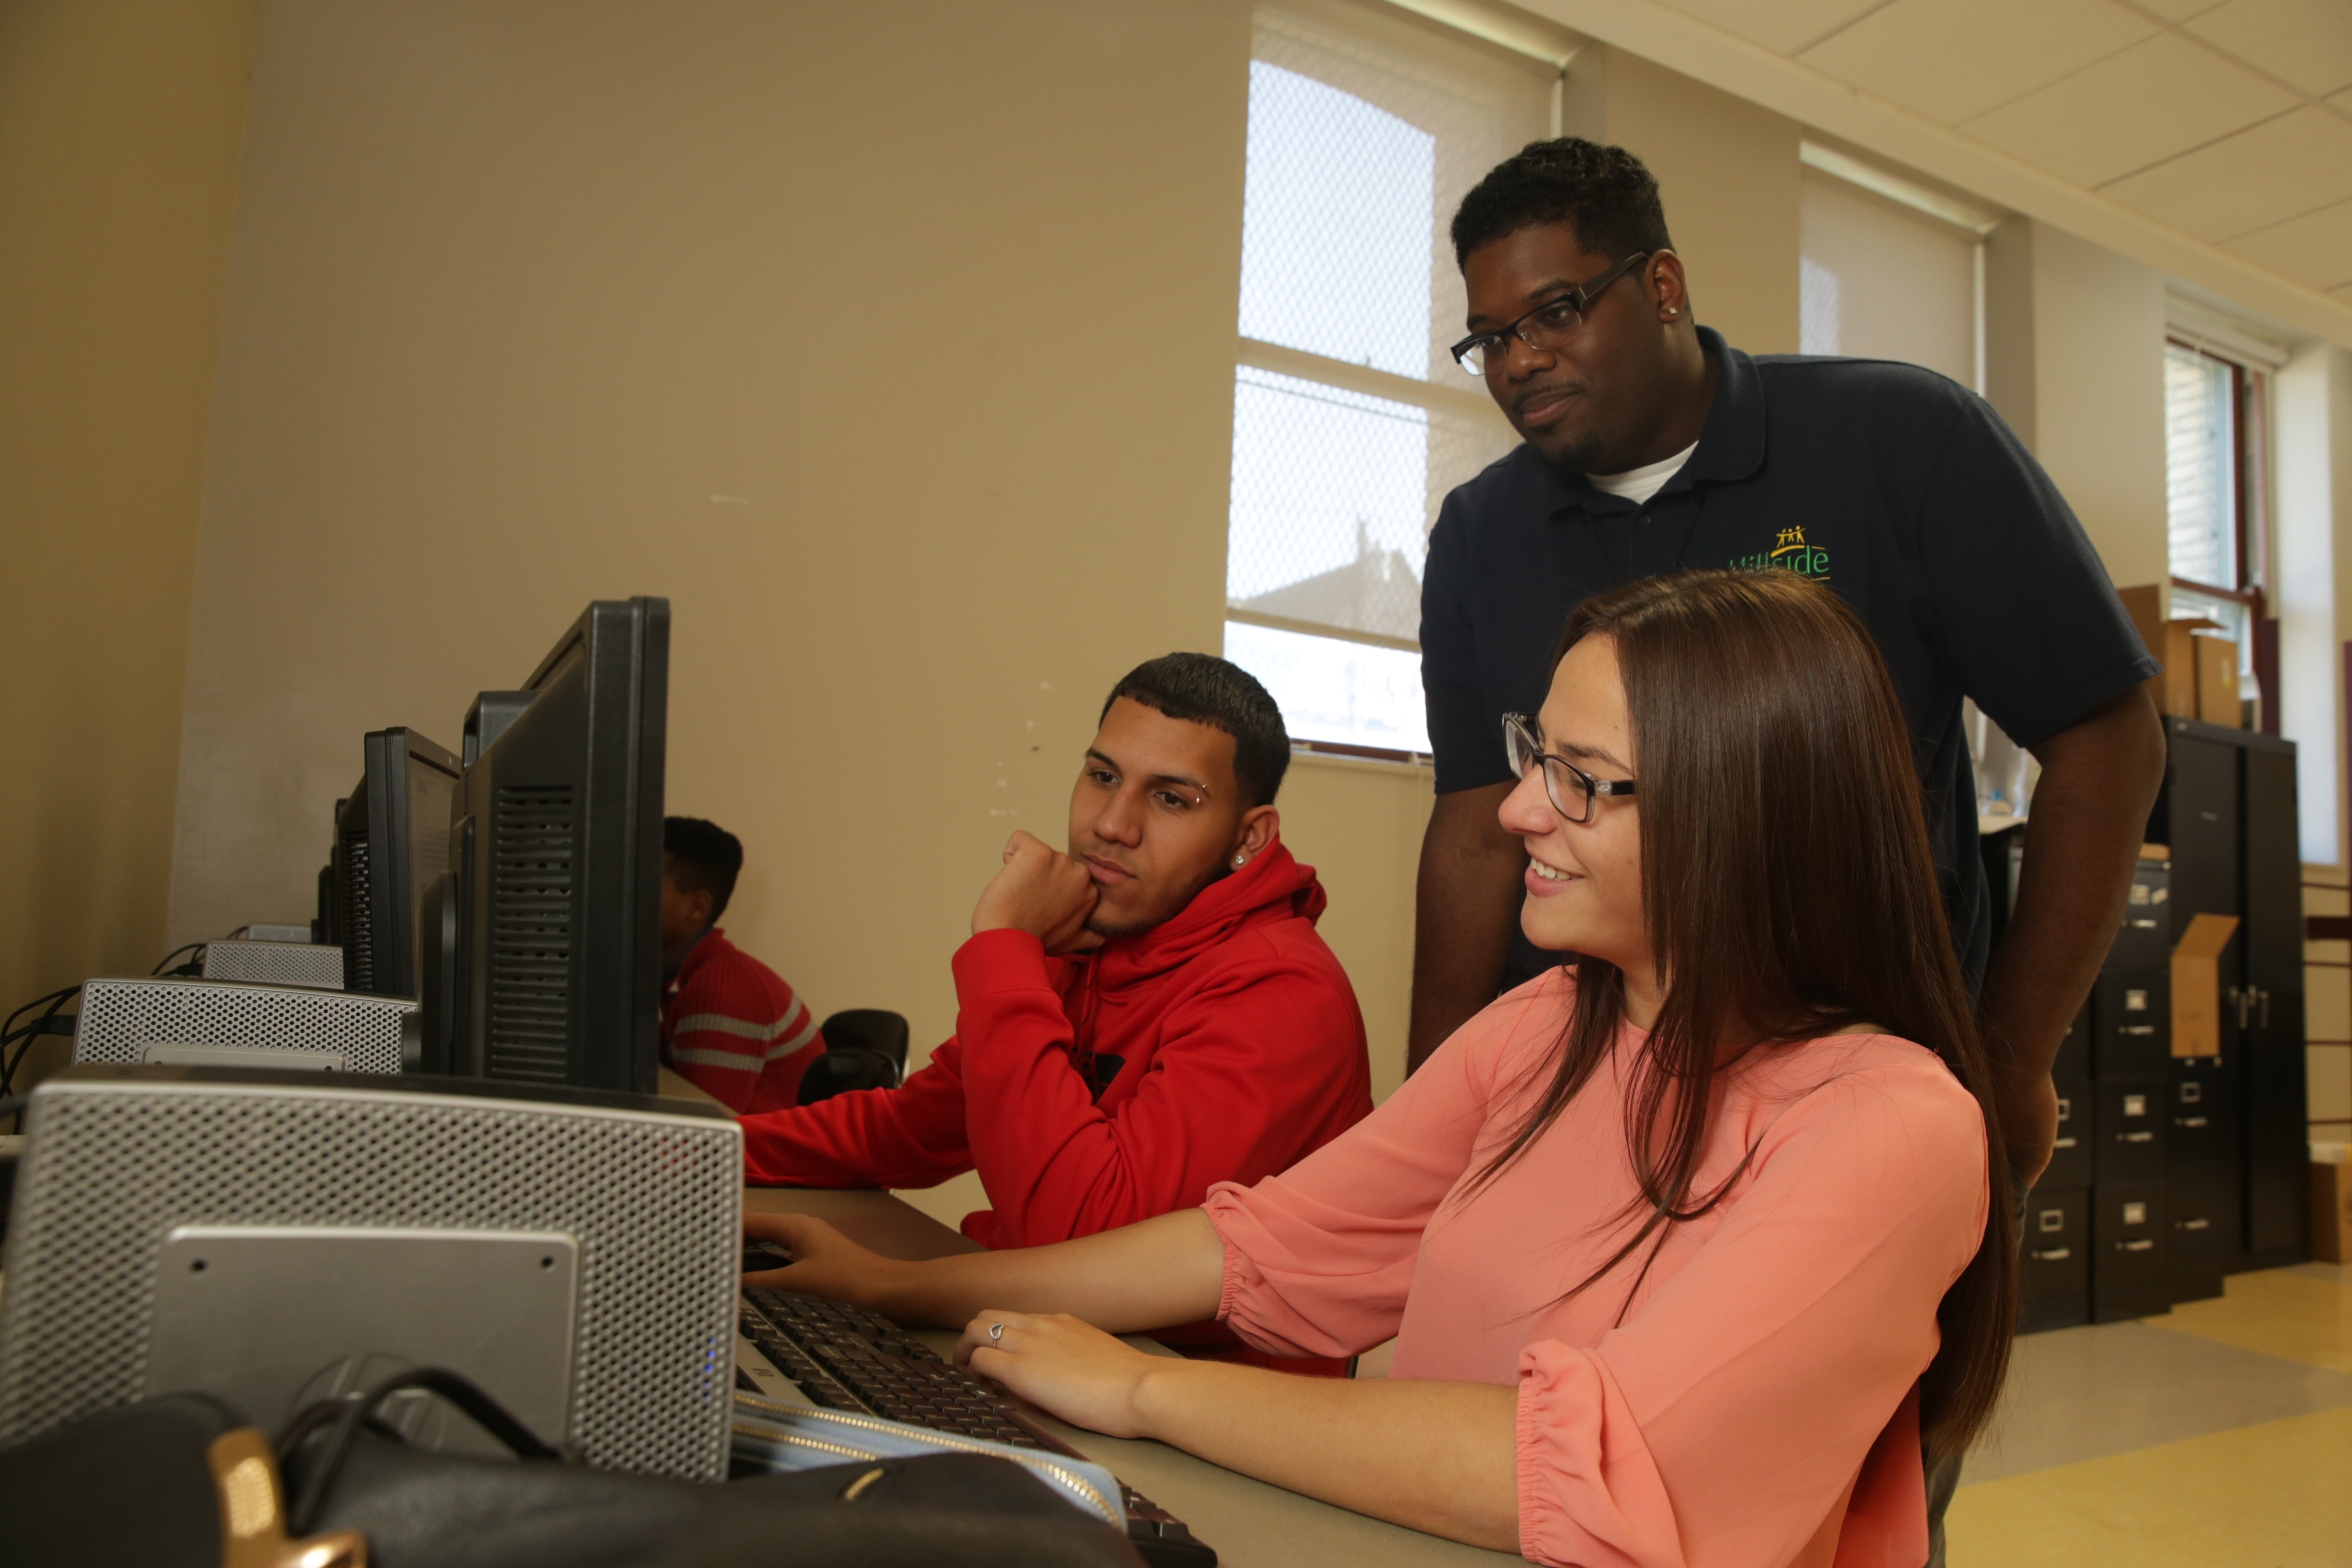 Sterling South, a Hillside Work-Scholarship Connection team advocate, works with Jose Velaezquez, 17, a senior, and Alexanette Vazquez, a junior, at South Park High School in Buffalo, N.Y. in this Oct. 12, 2016 file photo. (John Hickey/Buffalo News)